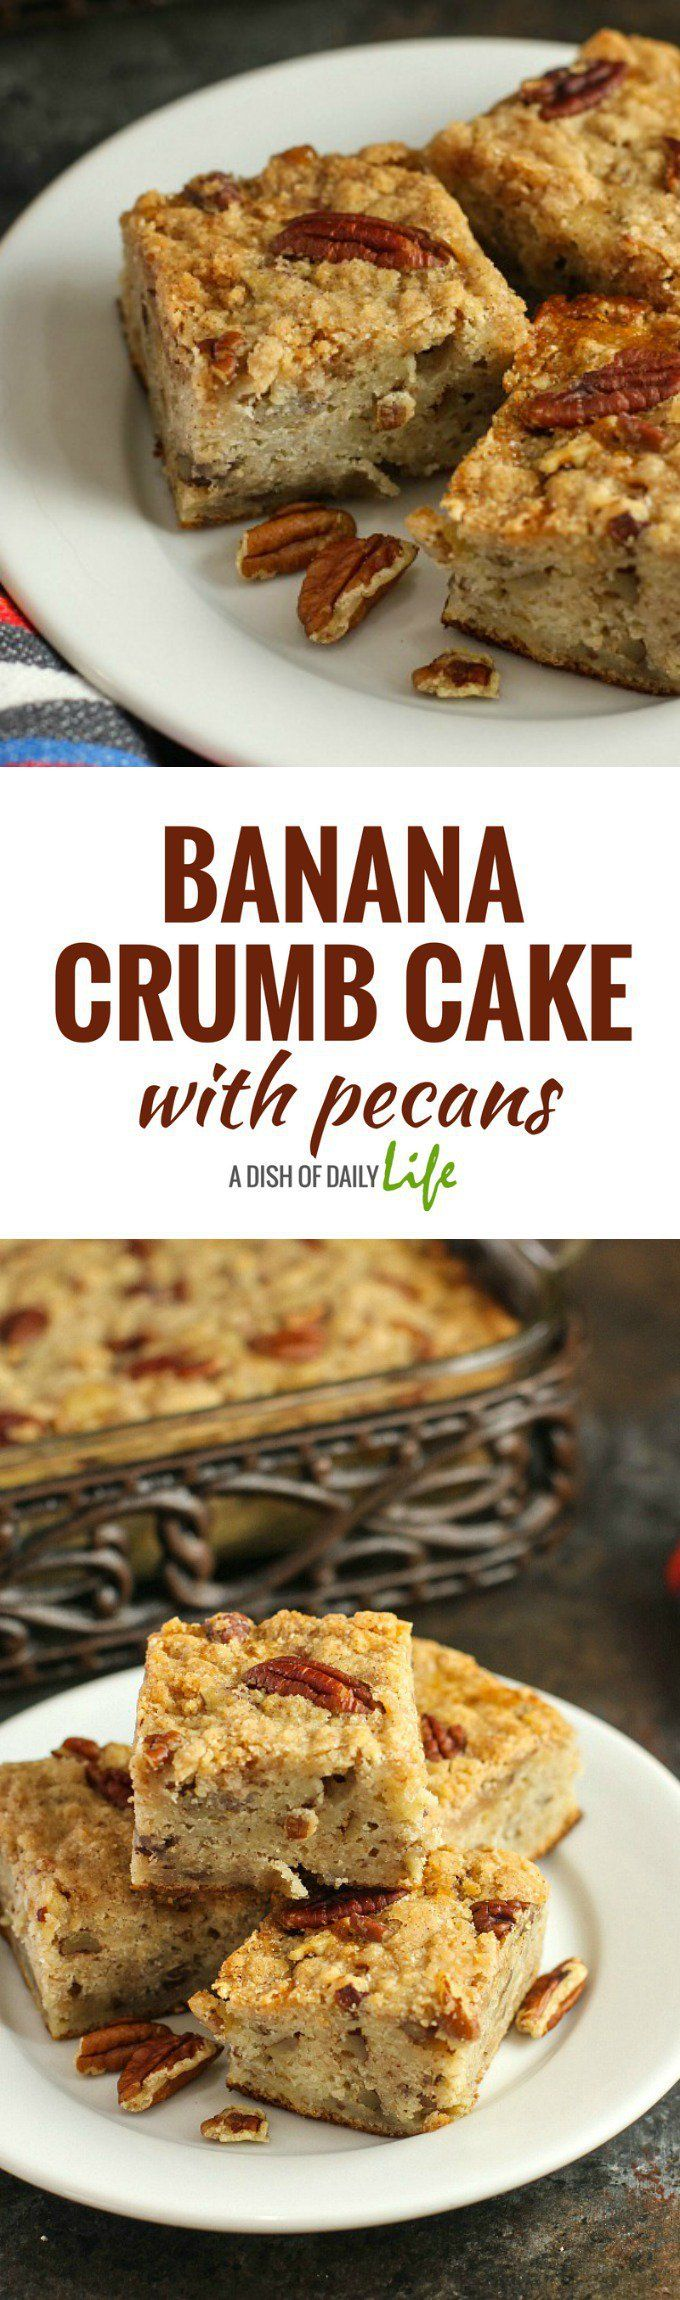 Banana Crumb Cake with Pecans...an absolutely delicious cross between banana bread and crumb cake! Dress it up with a scoop of ice cream or enjoy it as an anytime treat! Your family and friends will be asking you for the recipe!